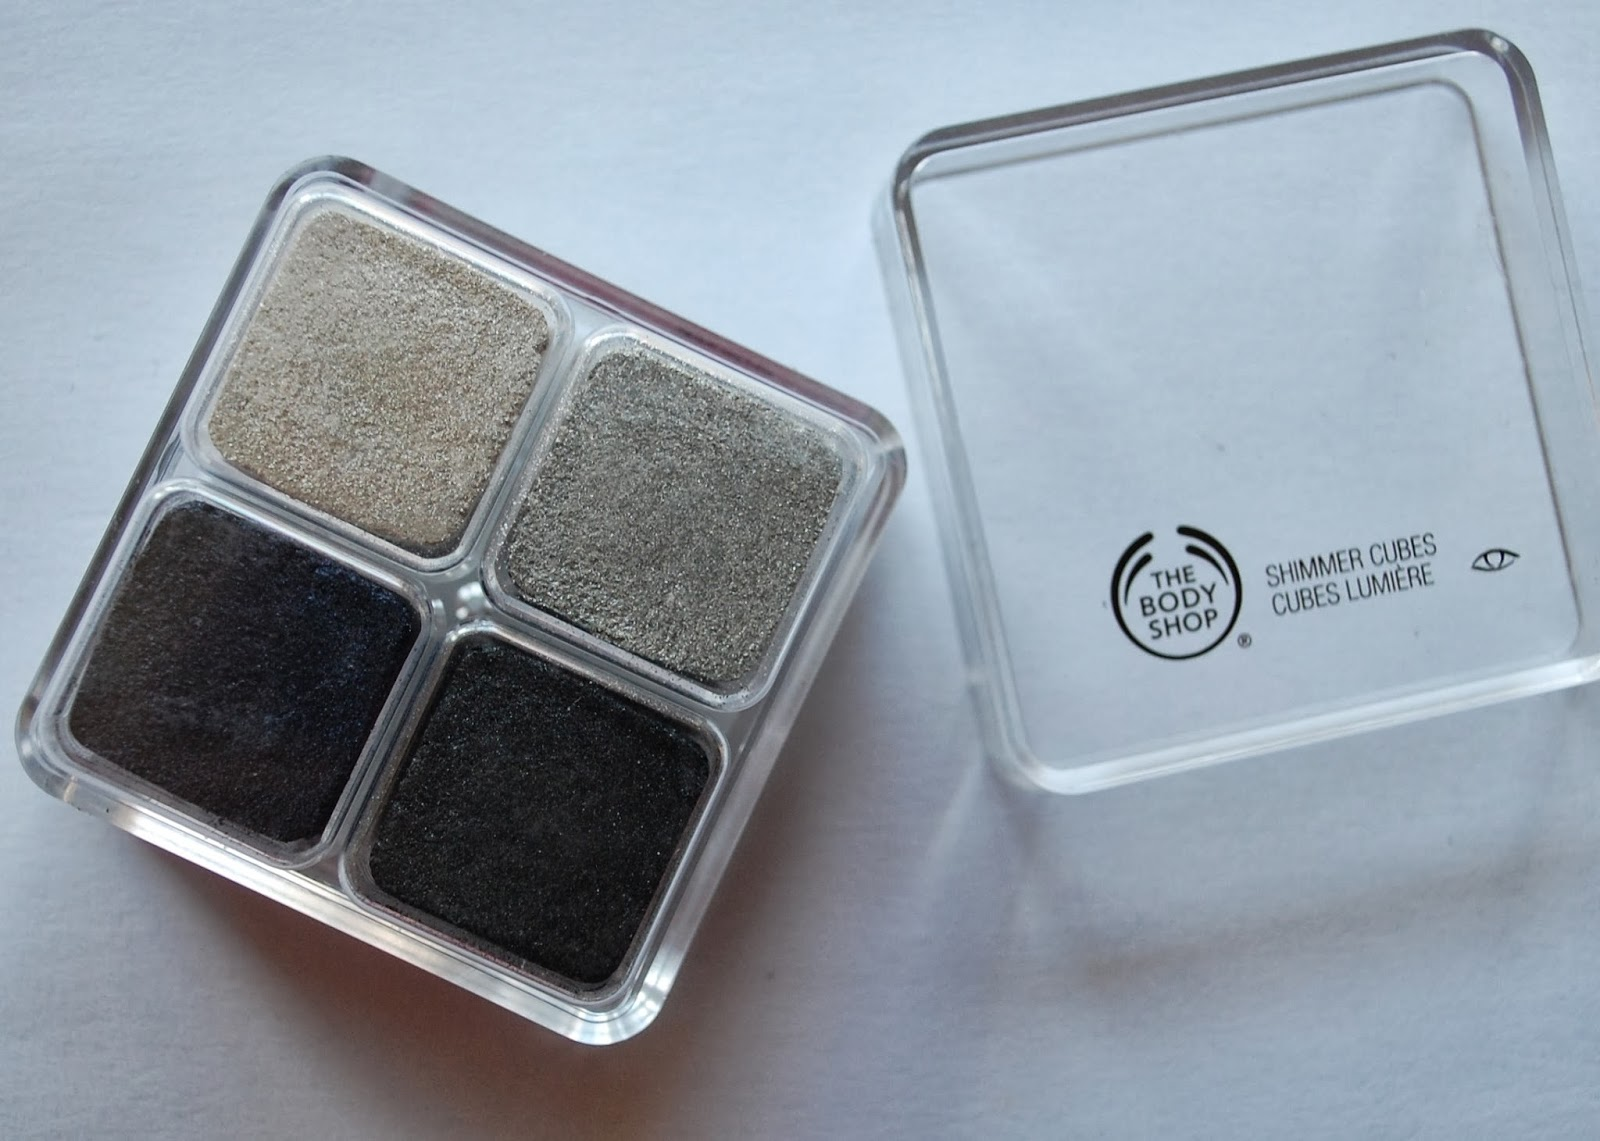 782b08532ca The 4 shades in this cube complement each other beautifully! They are all  shimmer shades and the thin texture of the shadows allow them to be easily  blended ...